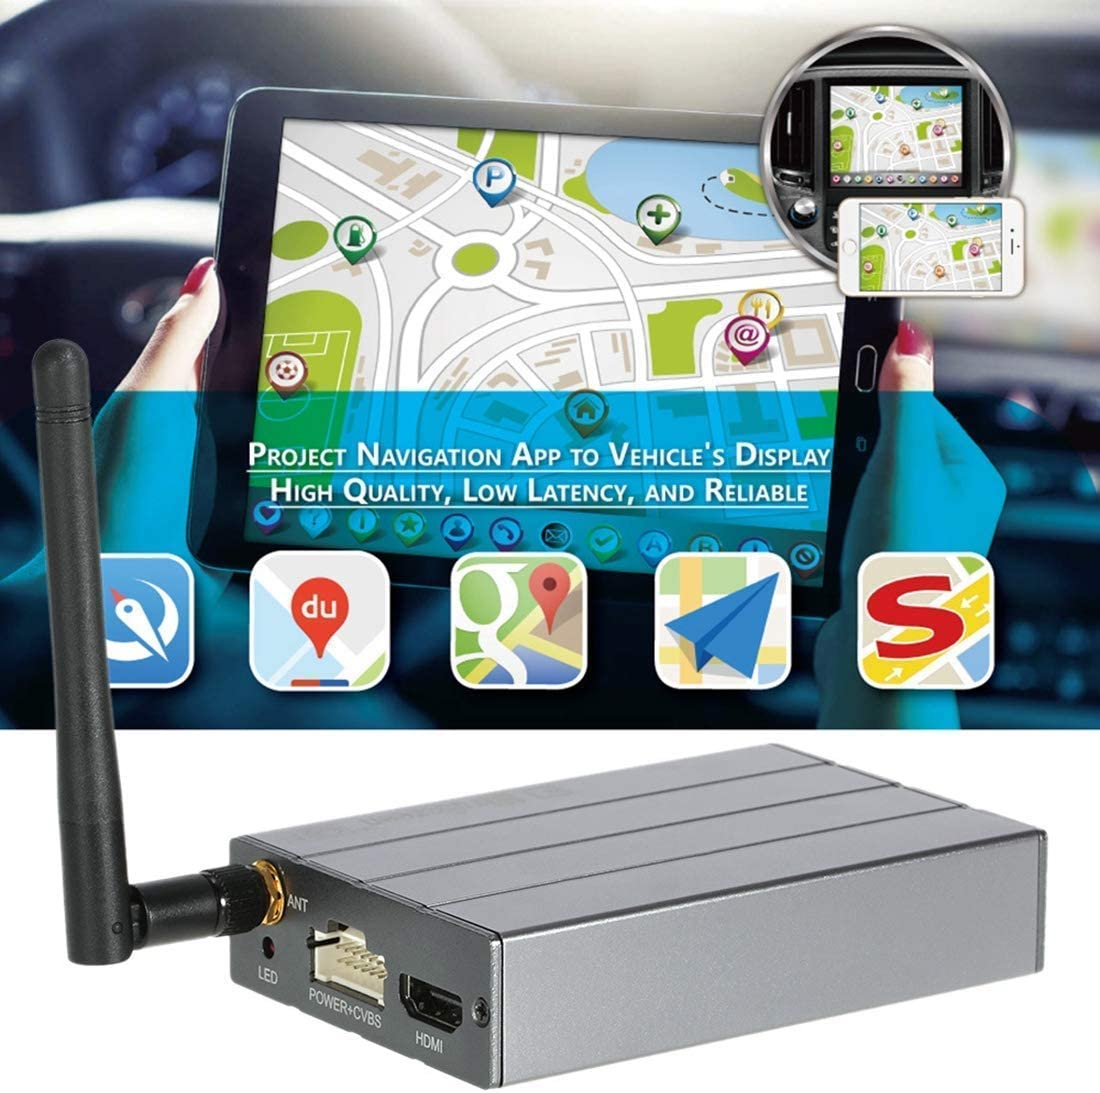 Phone to Car /& Home TV WiFi Mirror Box Compatible for iOS Android Airplay Miracast DLNA GPS Navigation picK-me C1 Car WiFi Display Dongle